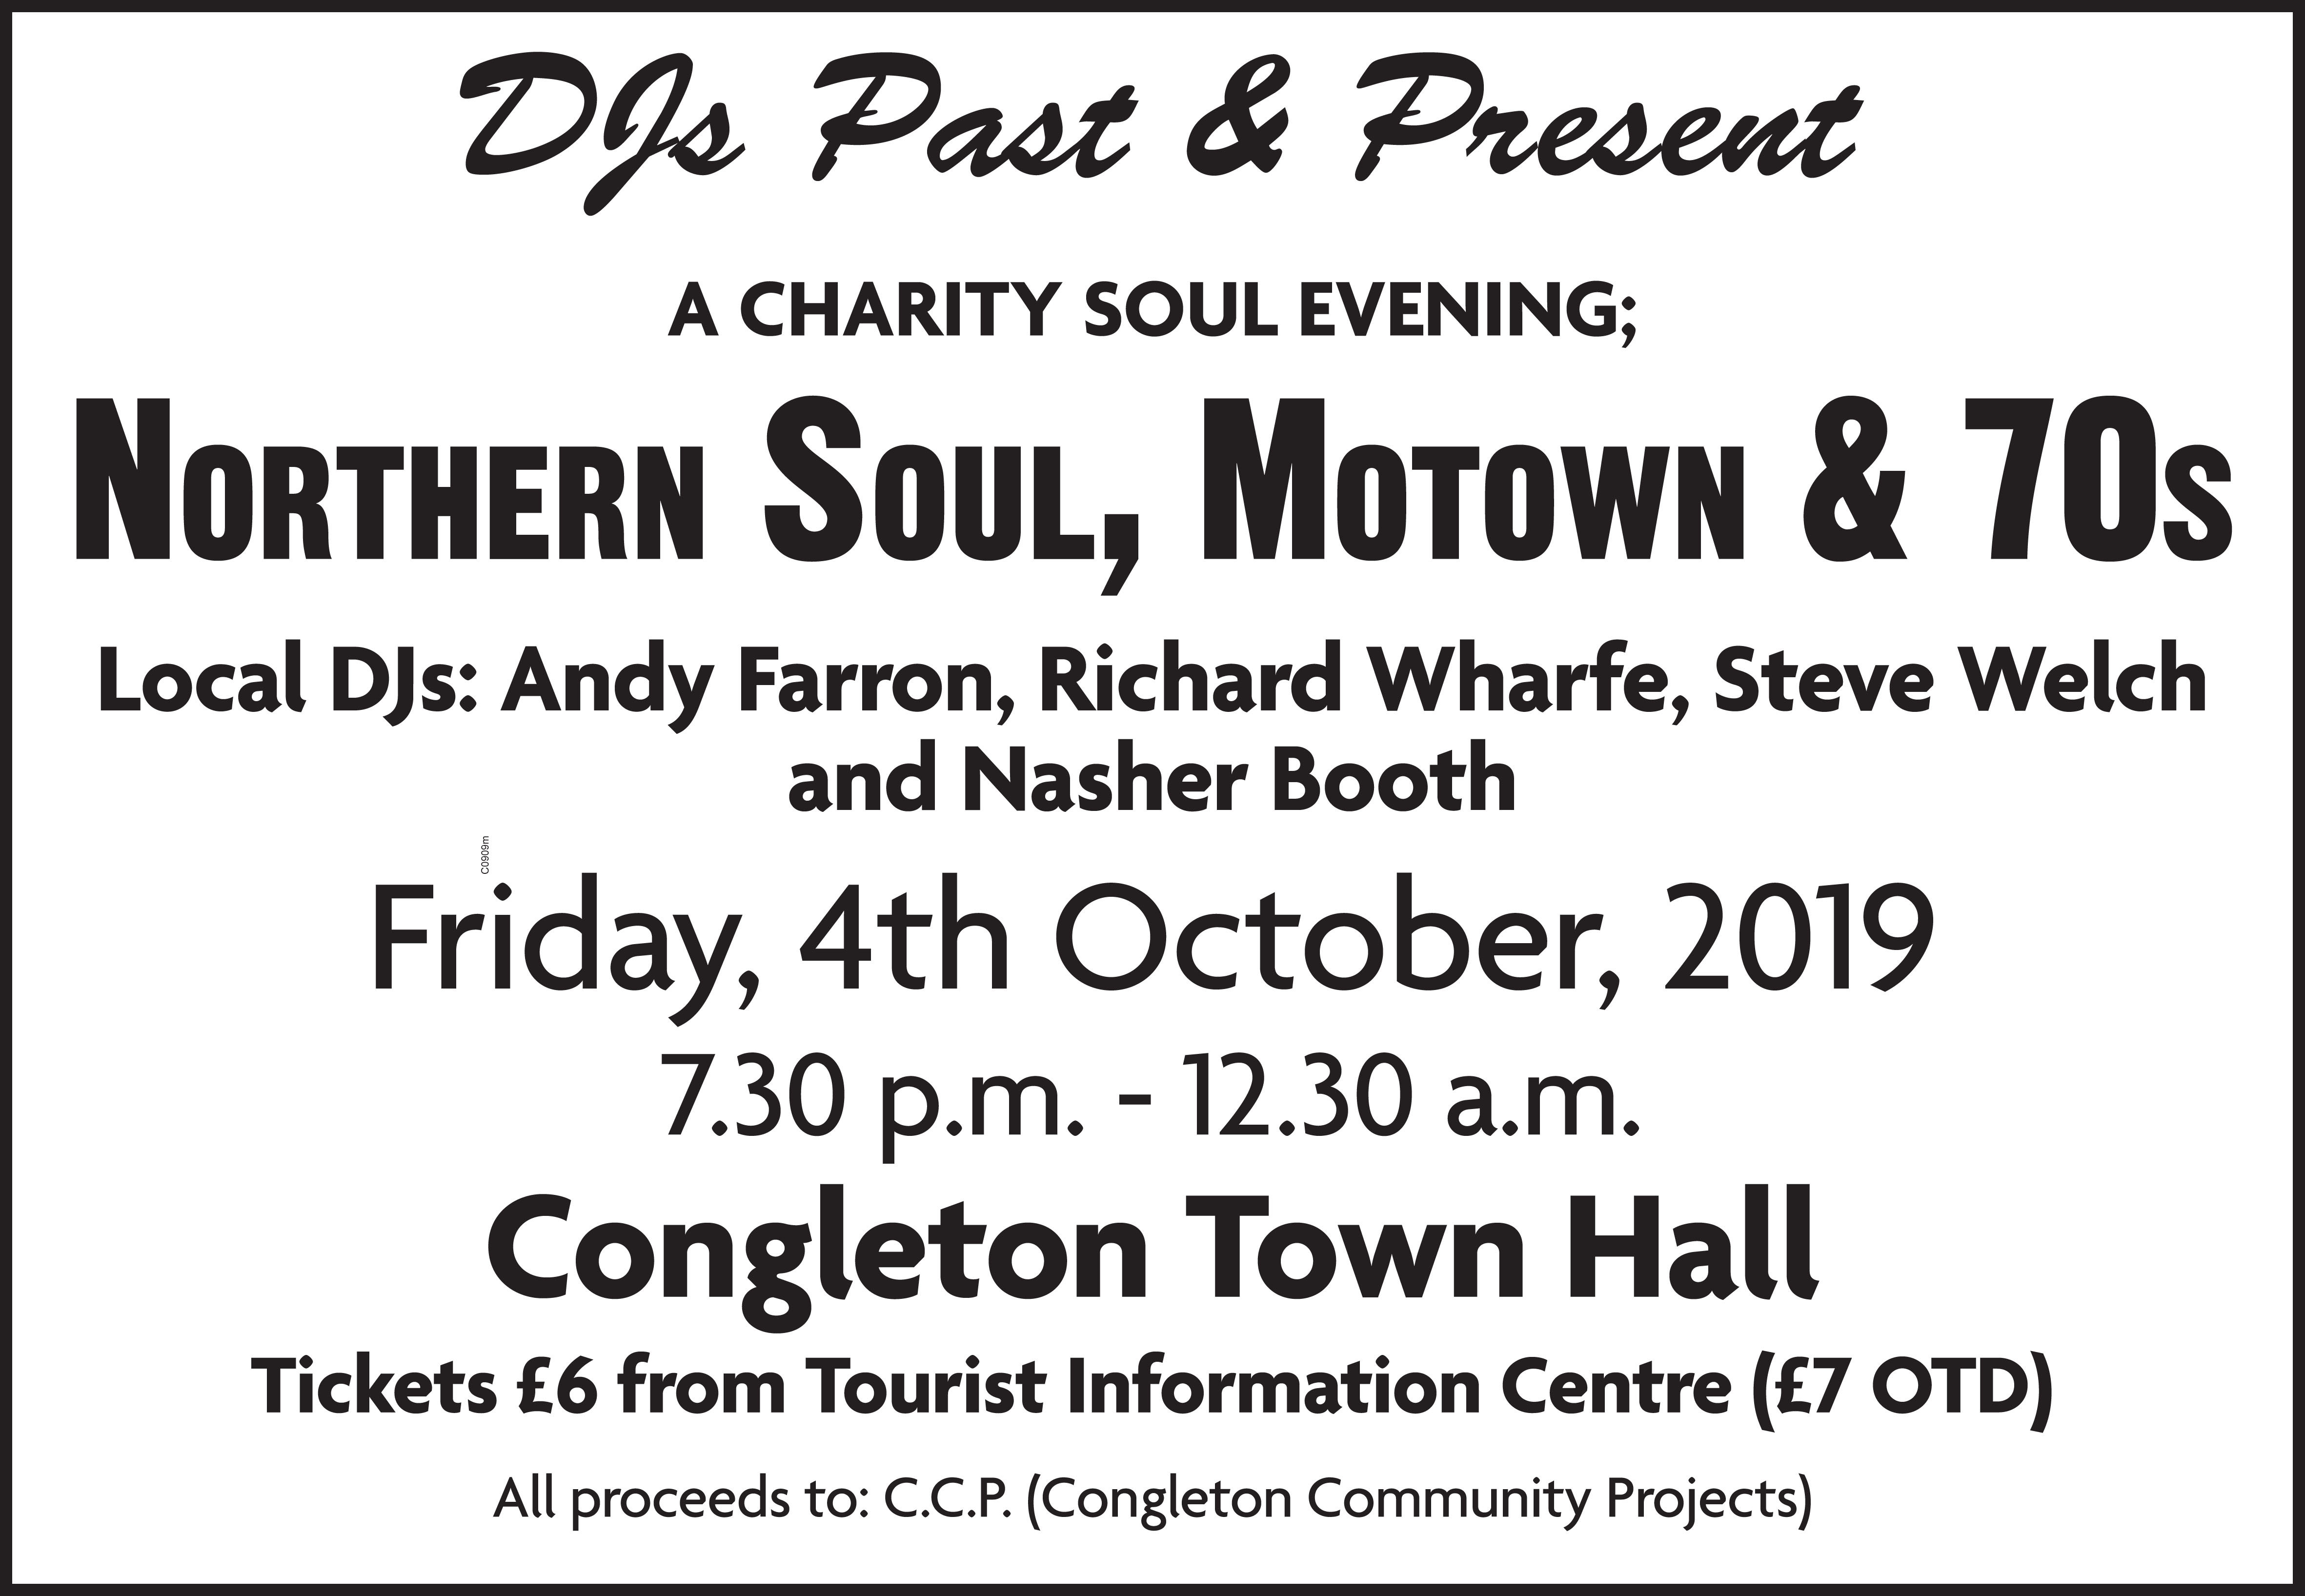 Northern Soul  Motown Fundraiser At Cth flyer